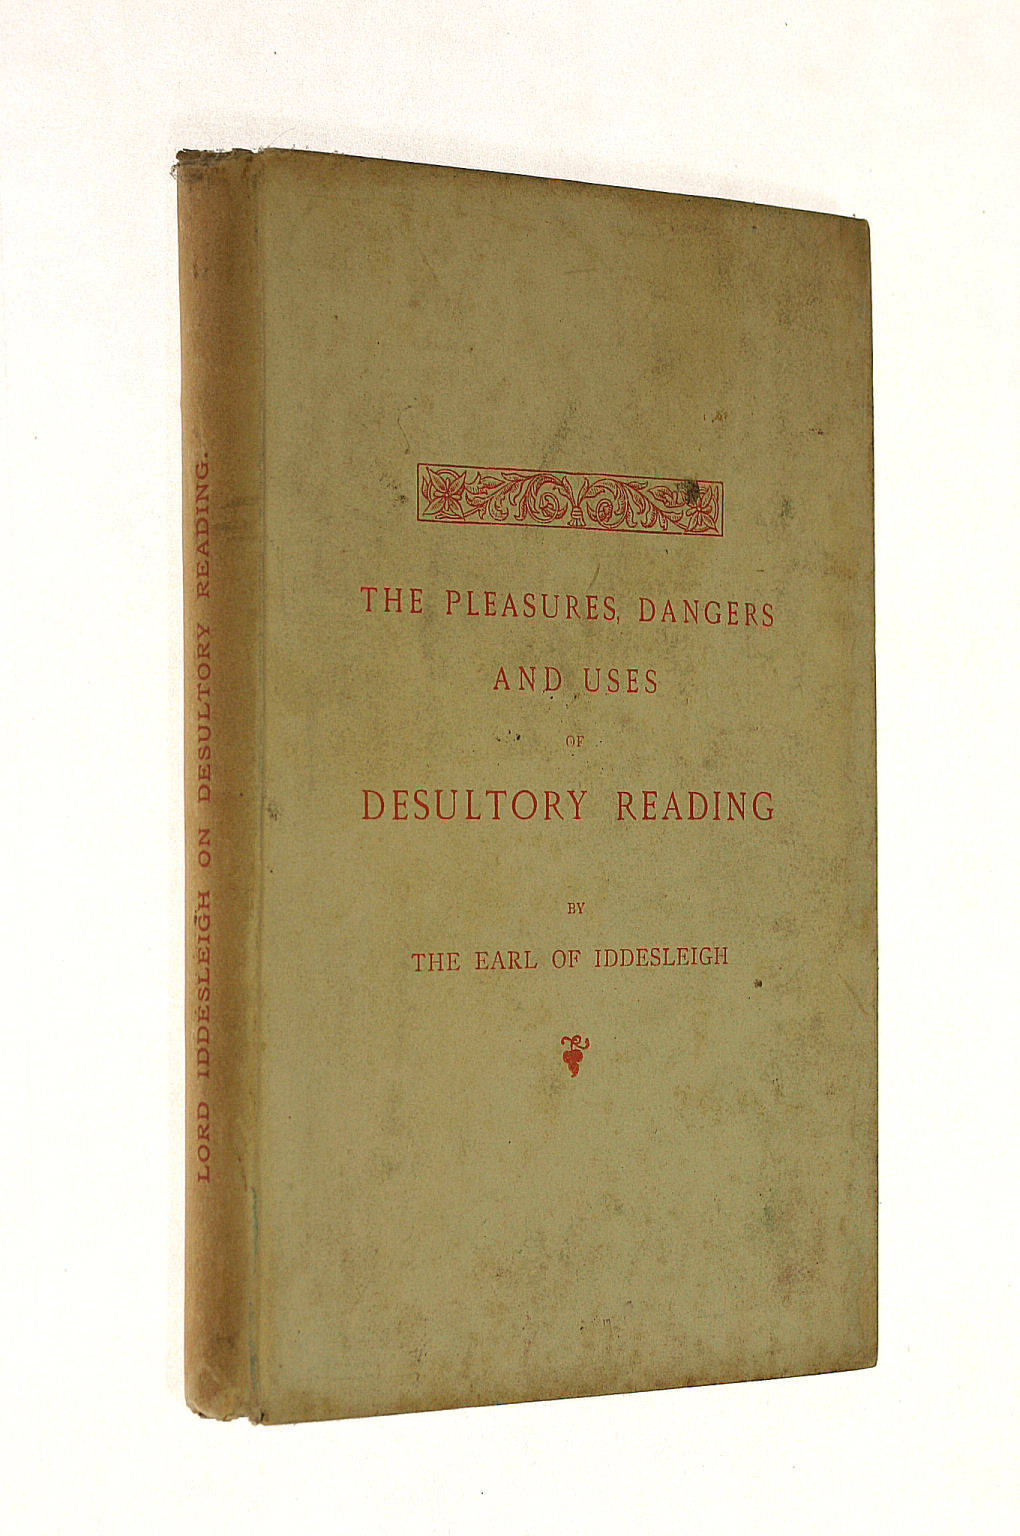 Image for The Pleasures, the Dangers and the Uses of Desultory Reading by the Right Honourable The Earl of Iddesleigh